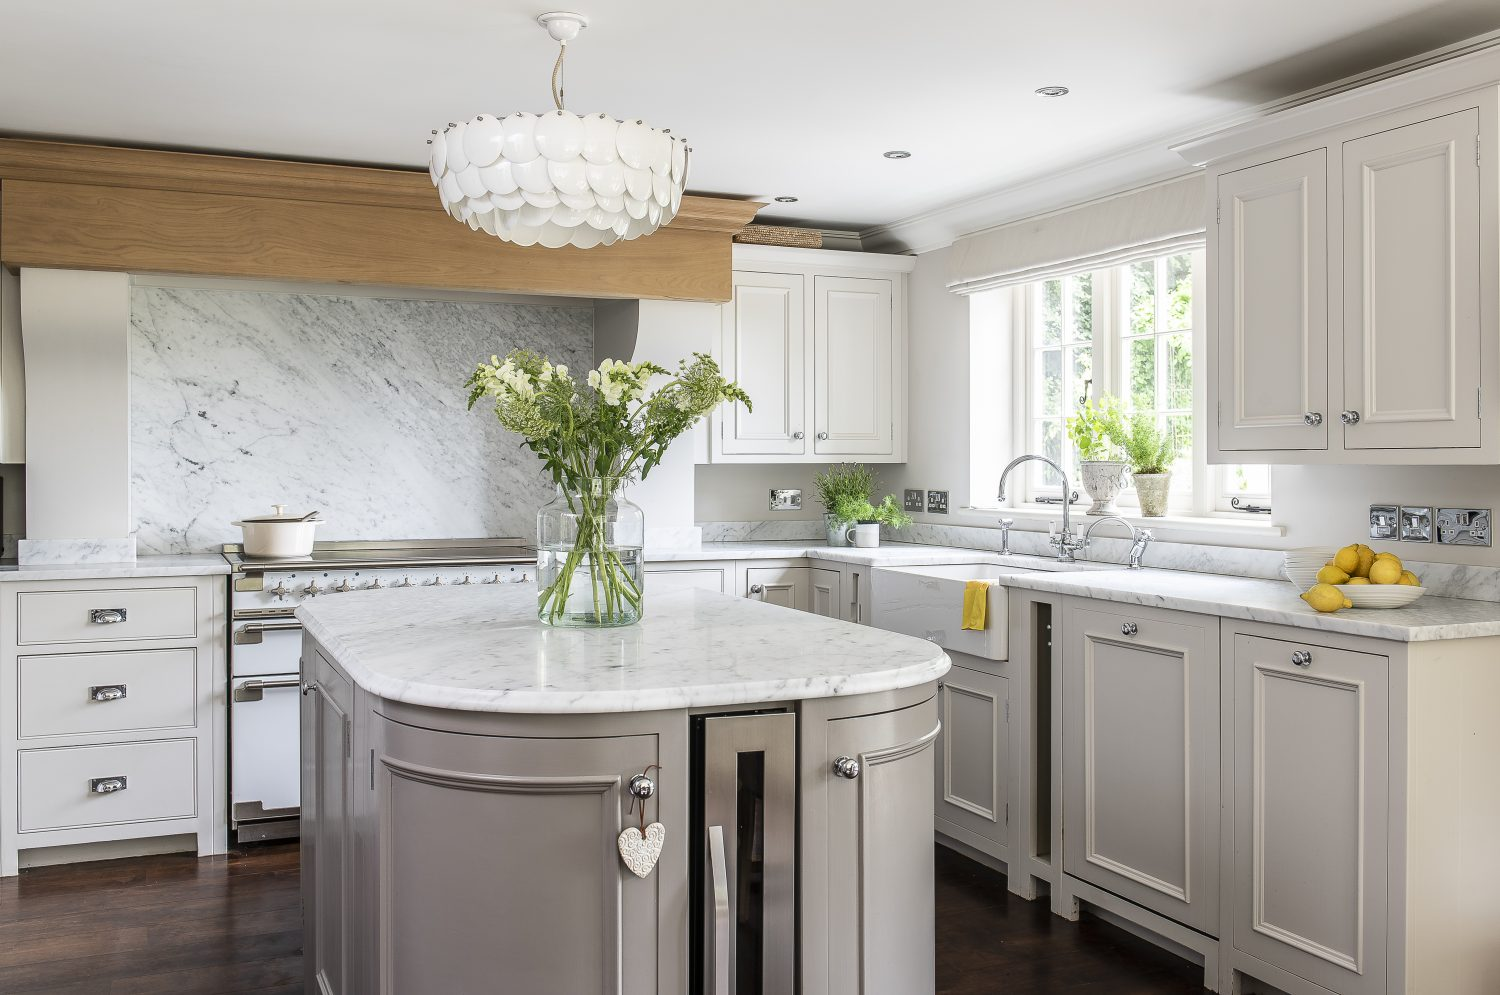 Karen knew she wanted her new kitchen to be light and spacious. The white marble worktop and pale grey units are sleek and sophisticated, while the table and chairs add a homely touch for family dining